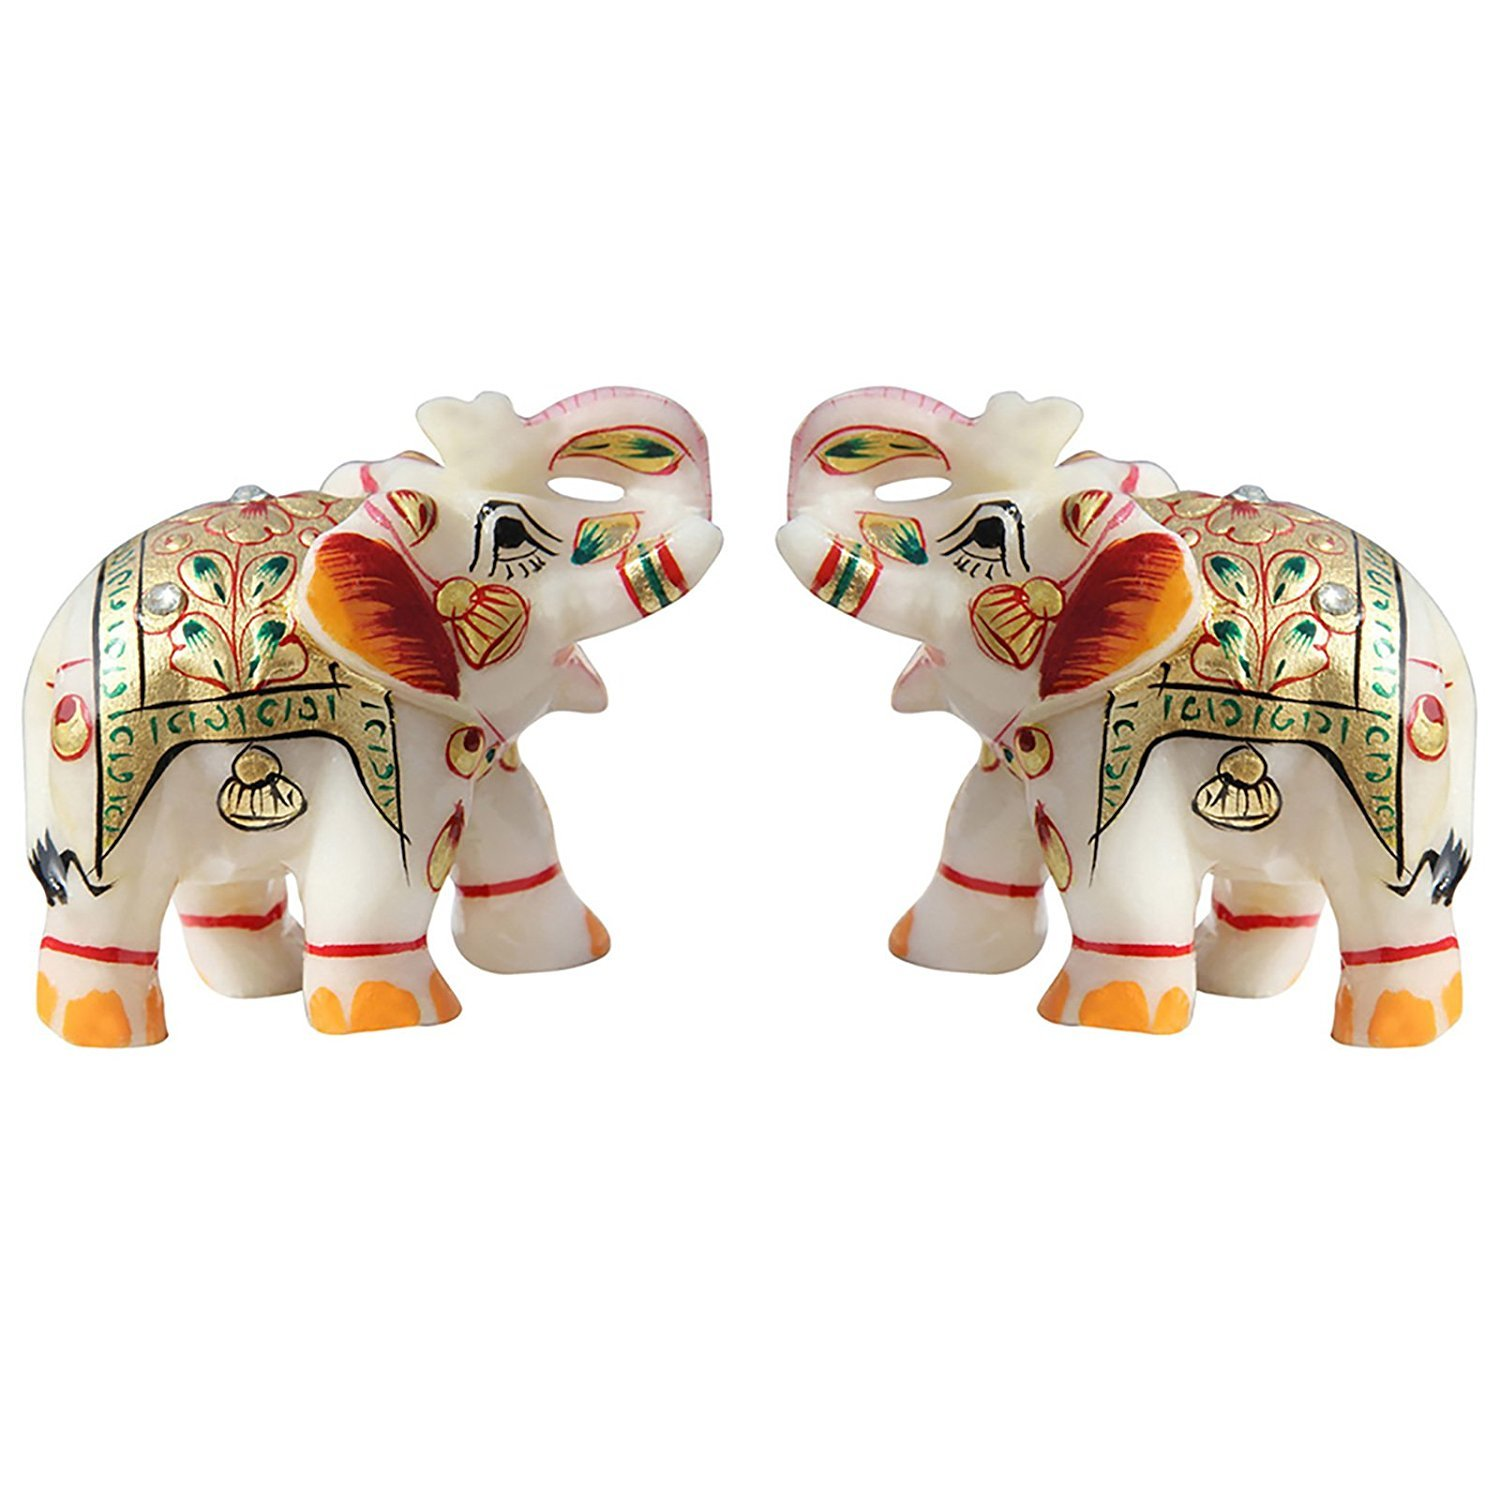 MARBLE ELEPHANT WITH GOLD EMBOSS PAINTING WORK